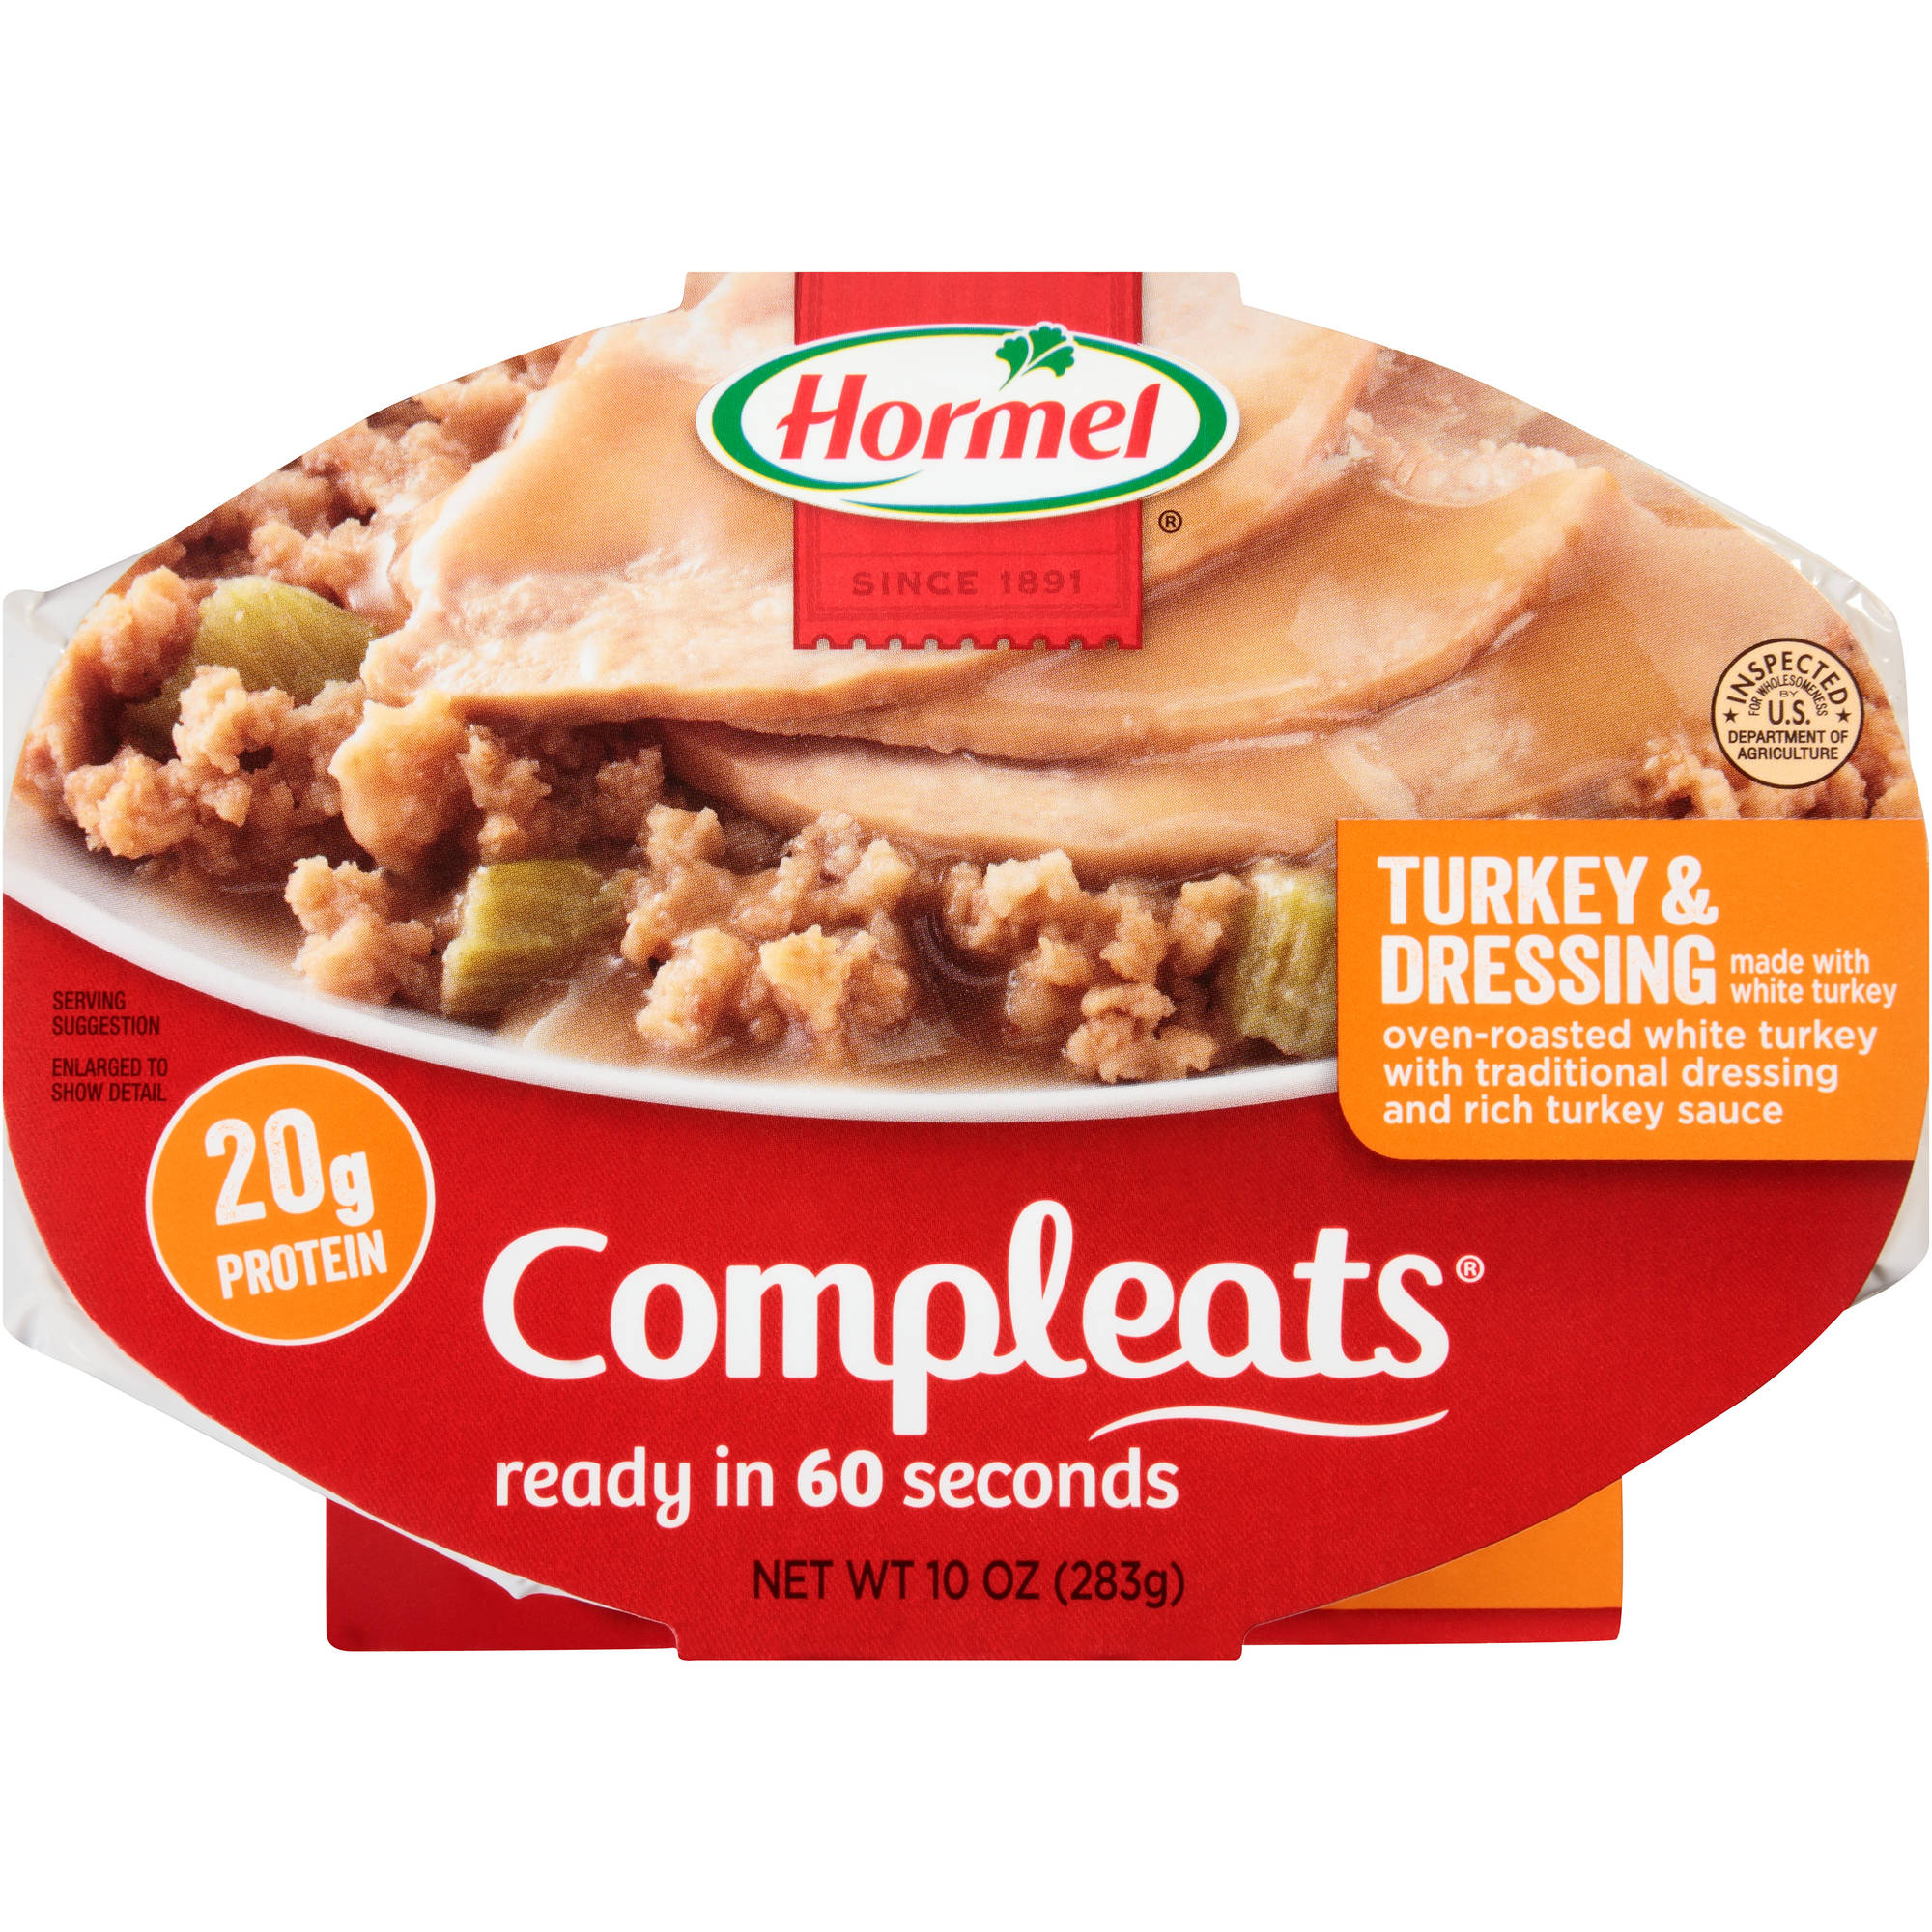 Hormel Turkey & Dressing With Gravy Microwave Bowls, 10 oz